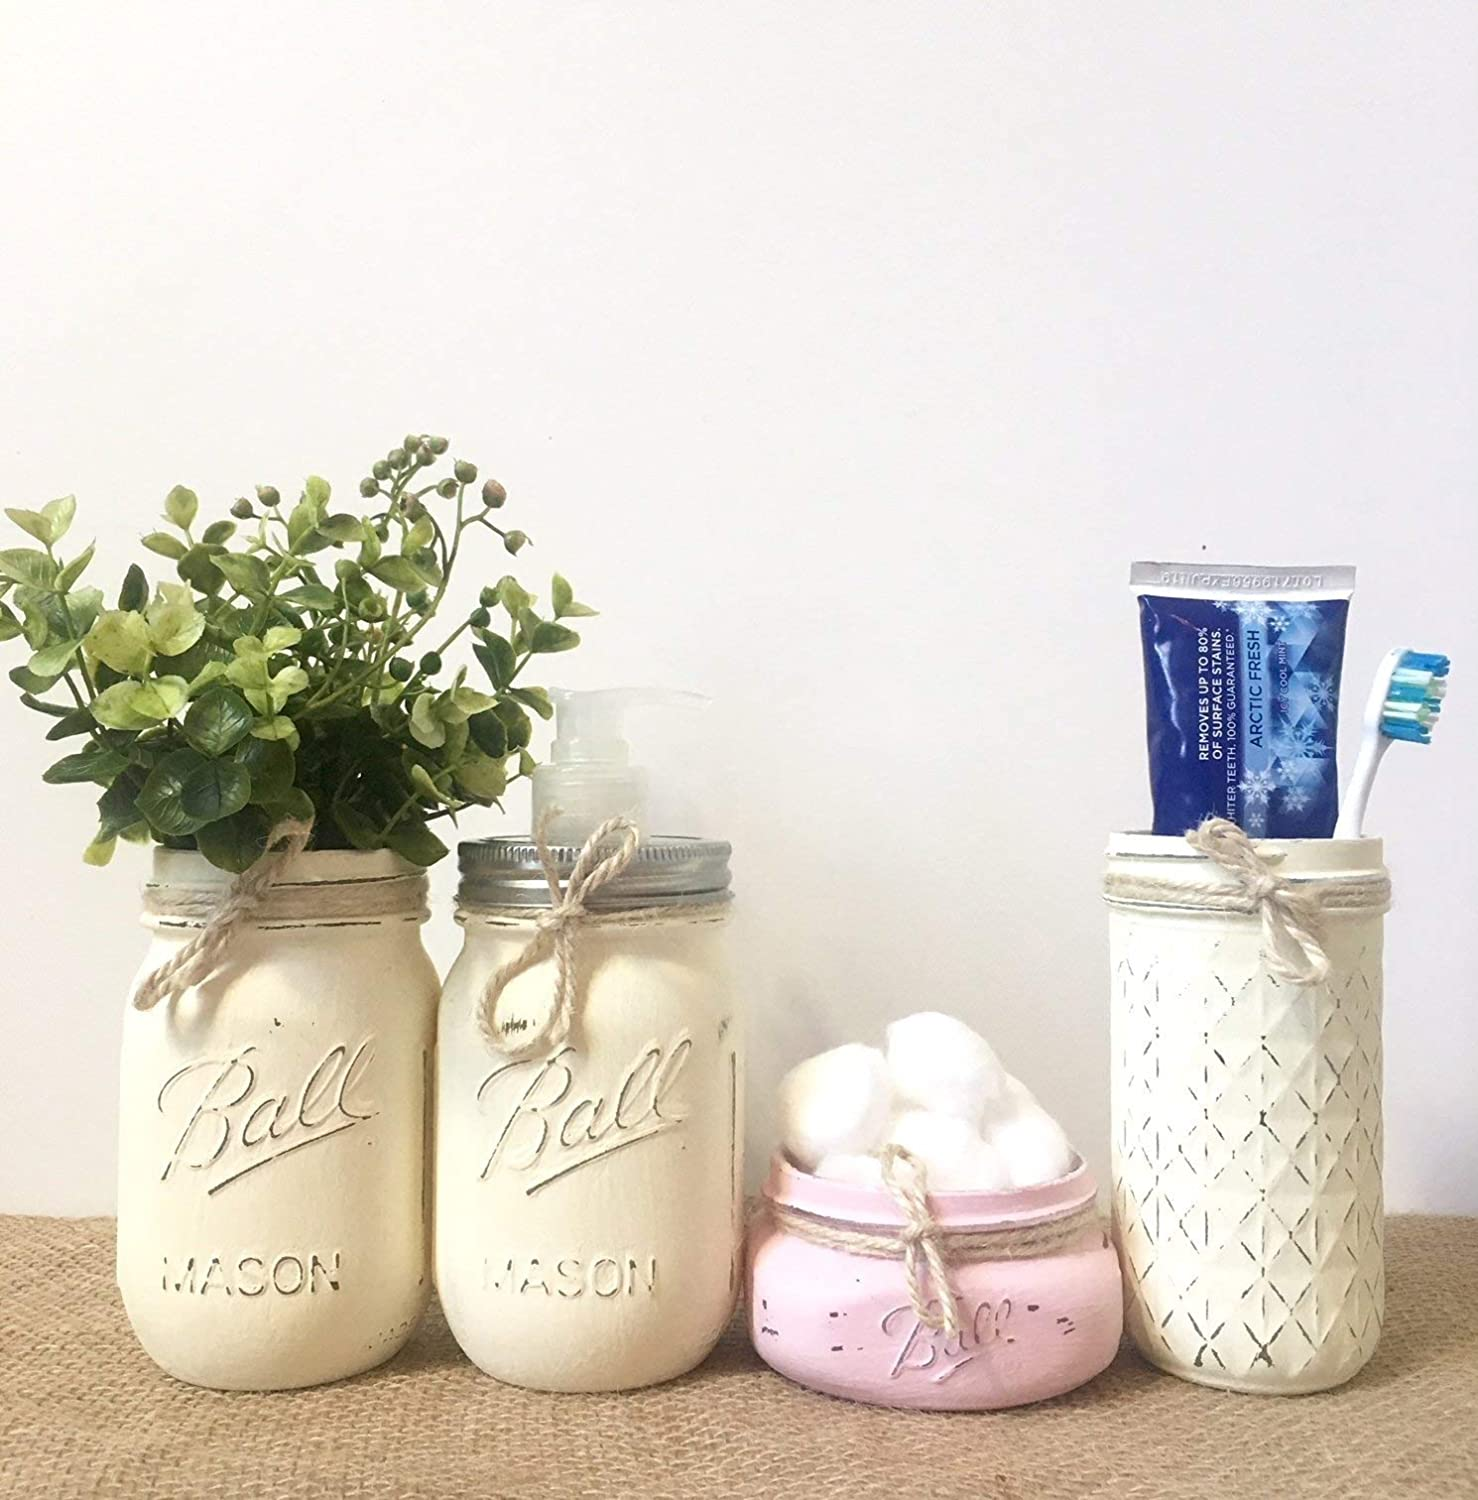 Rustic Mason Jar Bathroom Set, Your Choice of Colors, Soap Dispenser Lid Included!